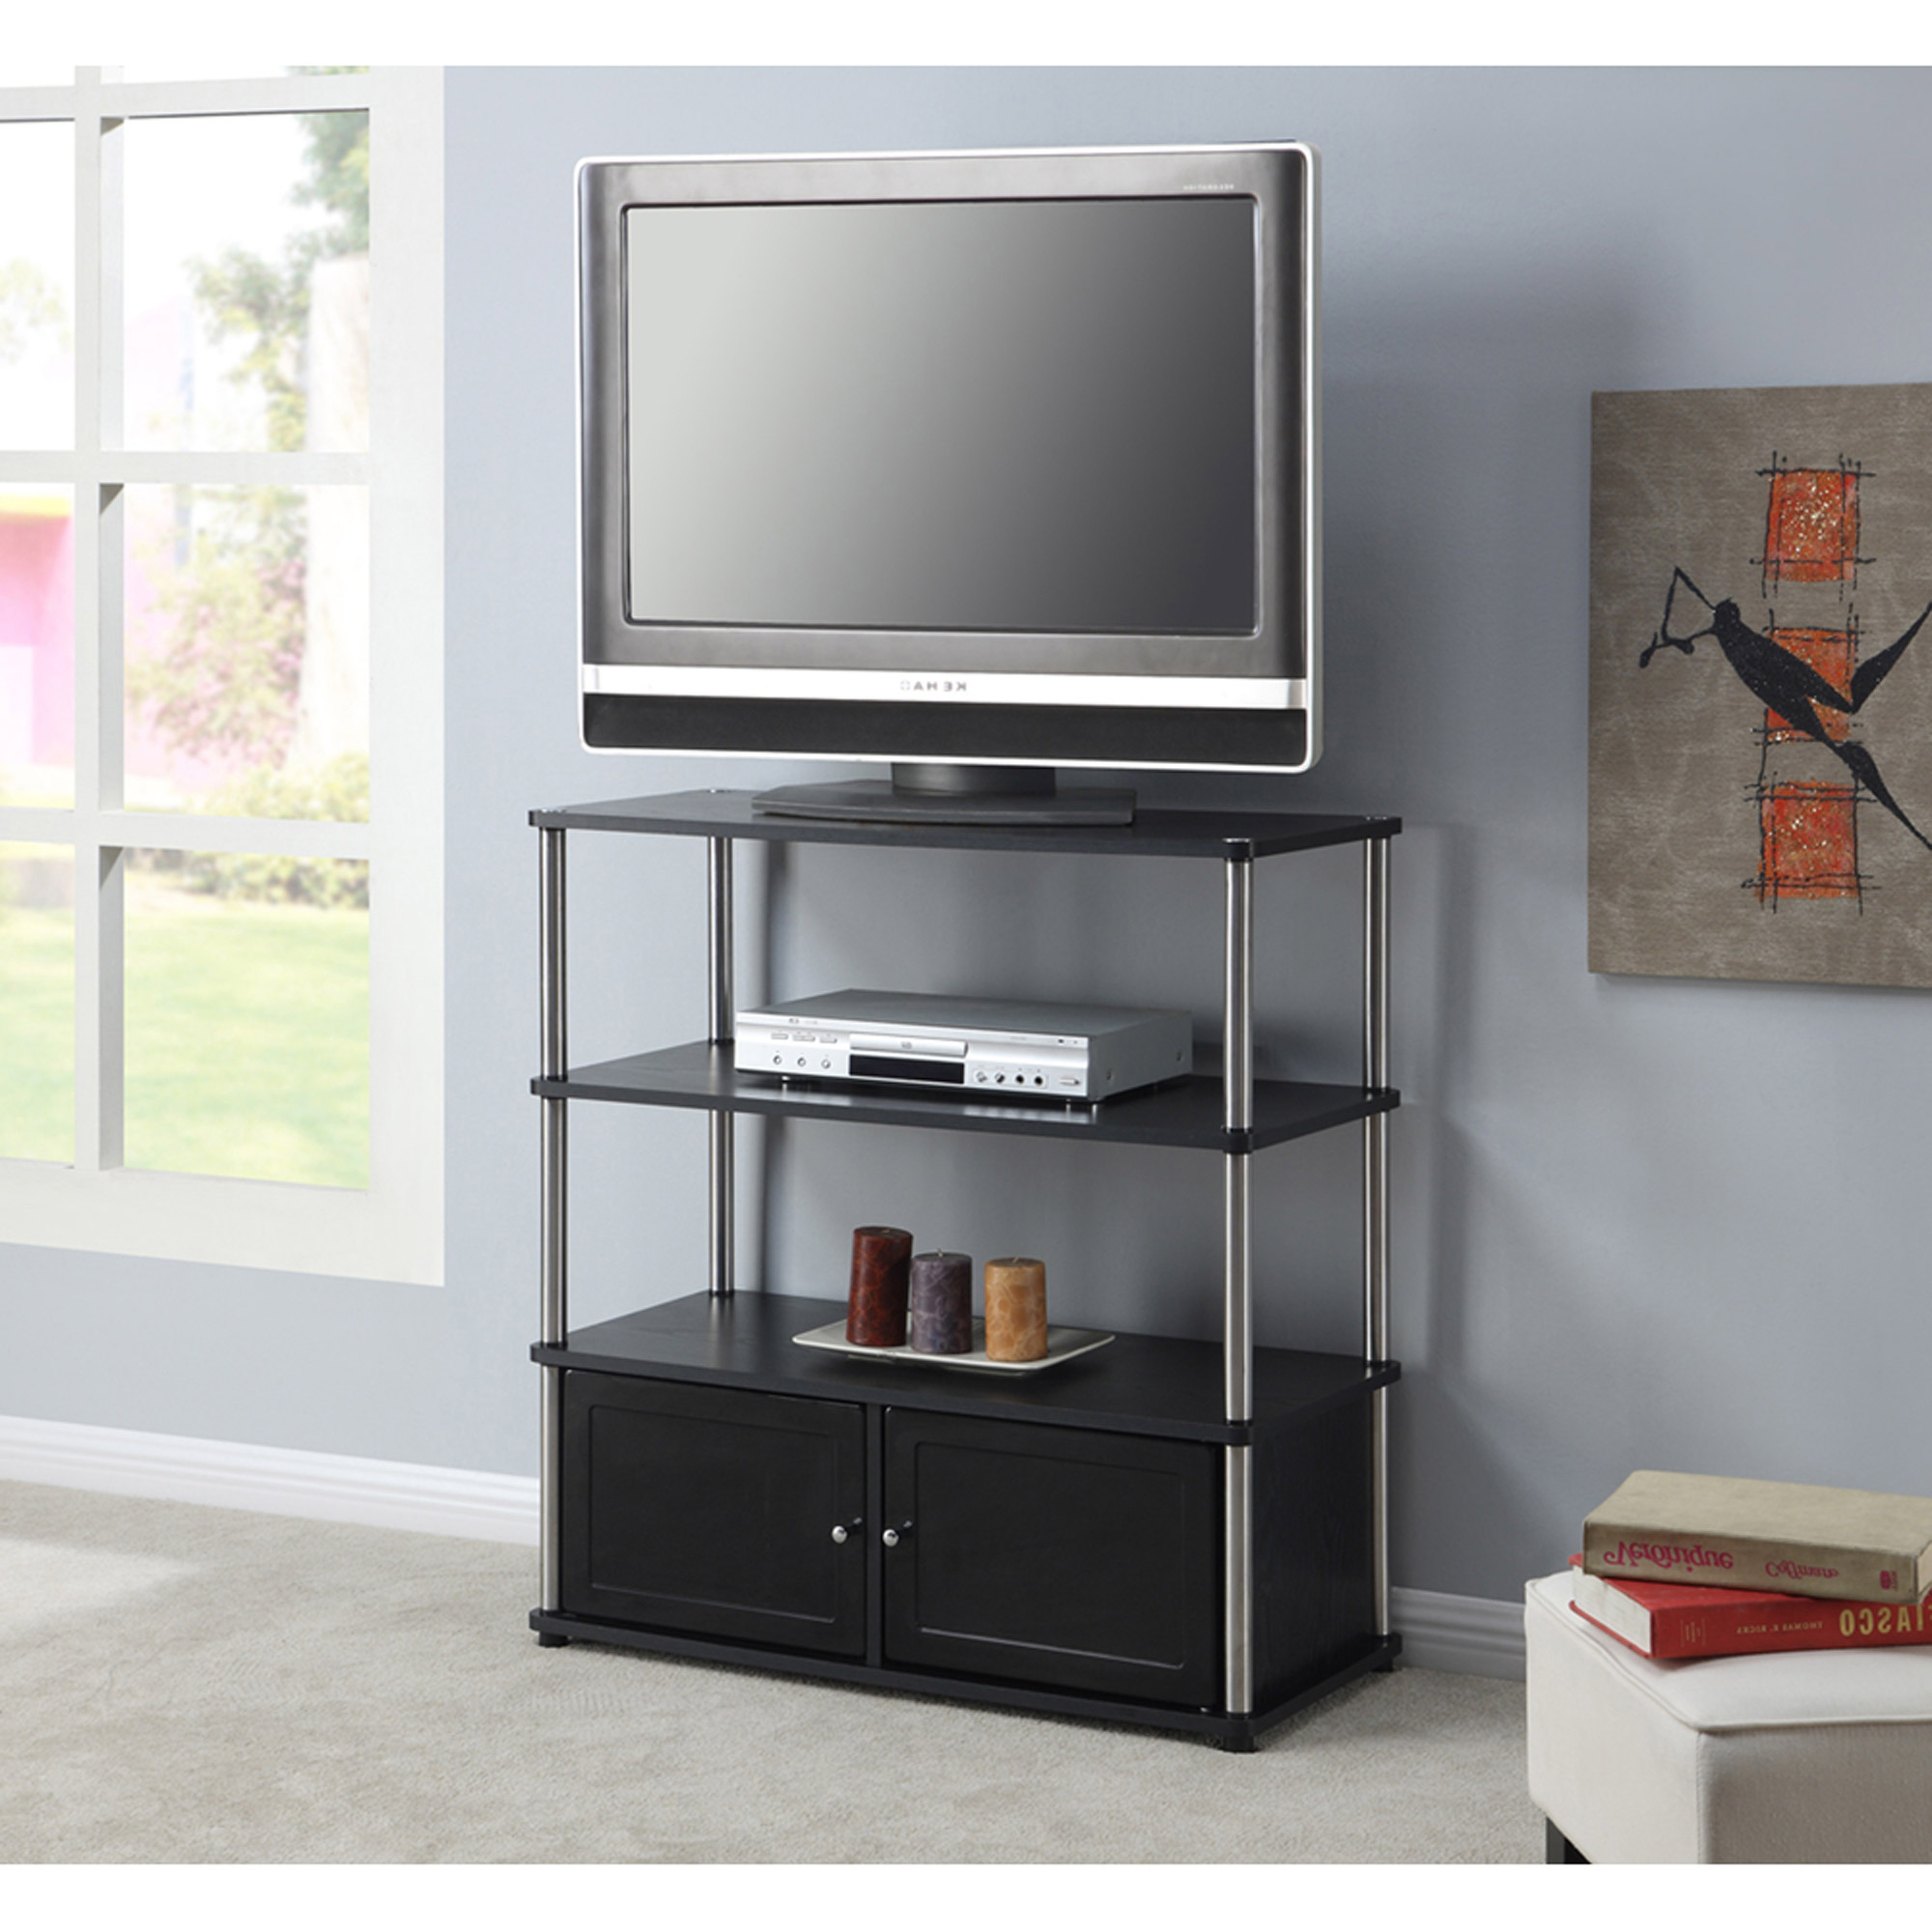 Bedroom Tv Stand With Drawers 40 Inch Tall Cabinet Corner Extra Box Regarding Recent Very Tall Tv Stands (View 3 of 20)